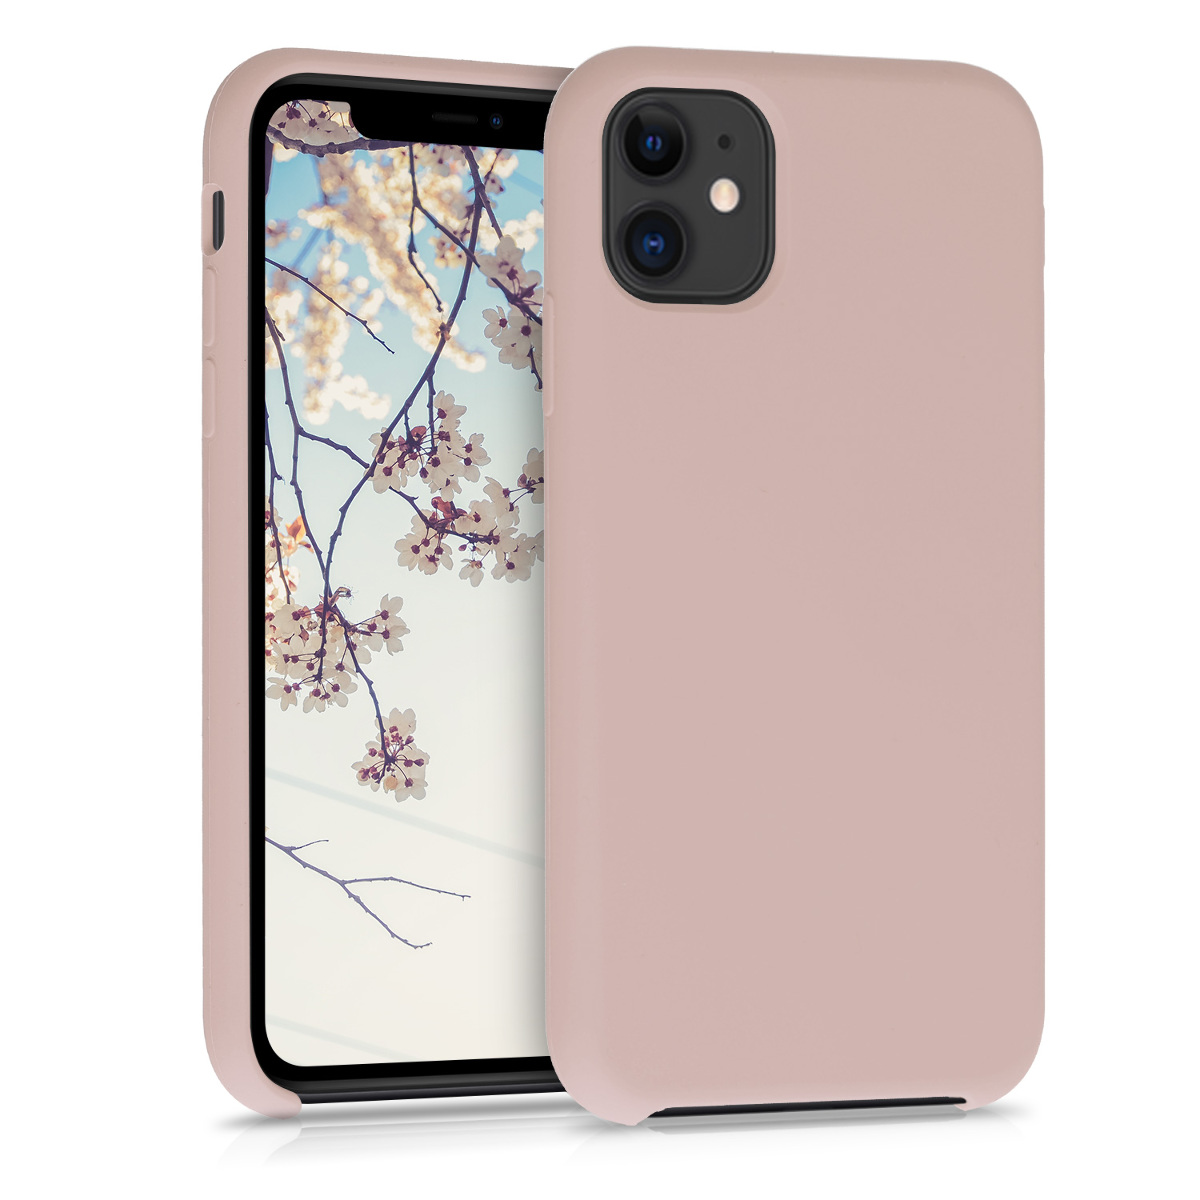 KW Θήκη Σιλικόνης Apple iPhone 11 - Soft Flexible Rubber Protective Cover - Dusty Pink (49724.10)